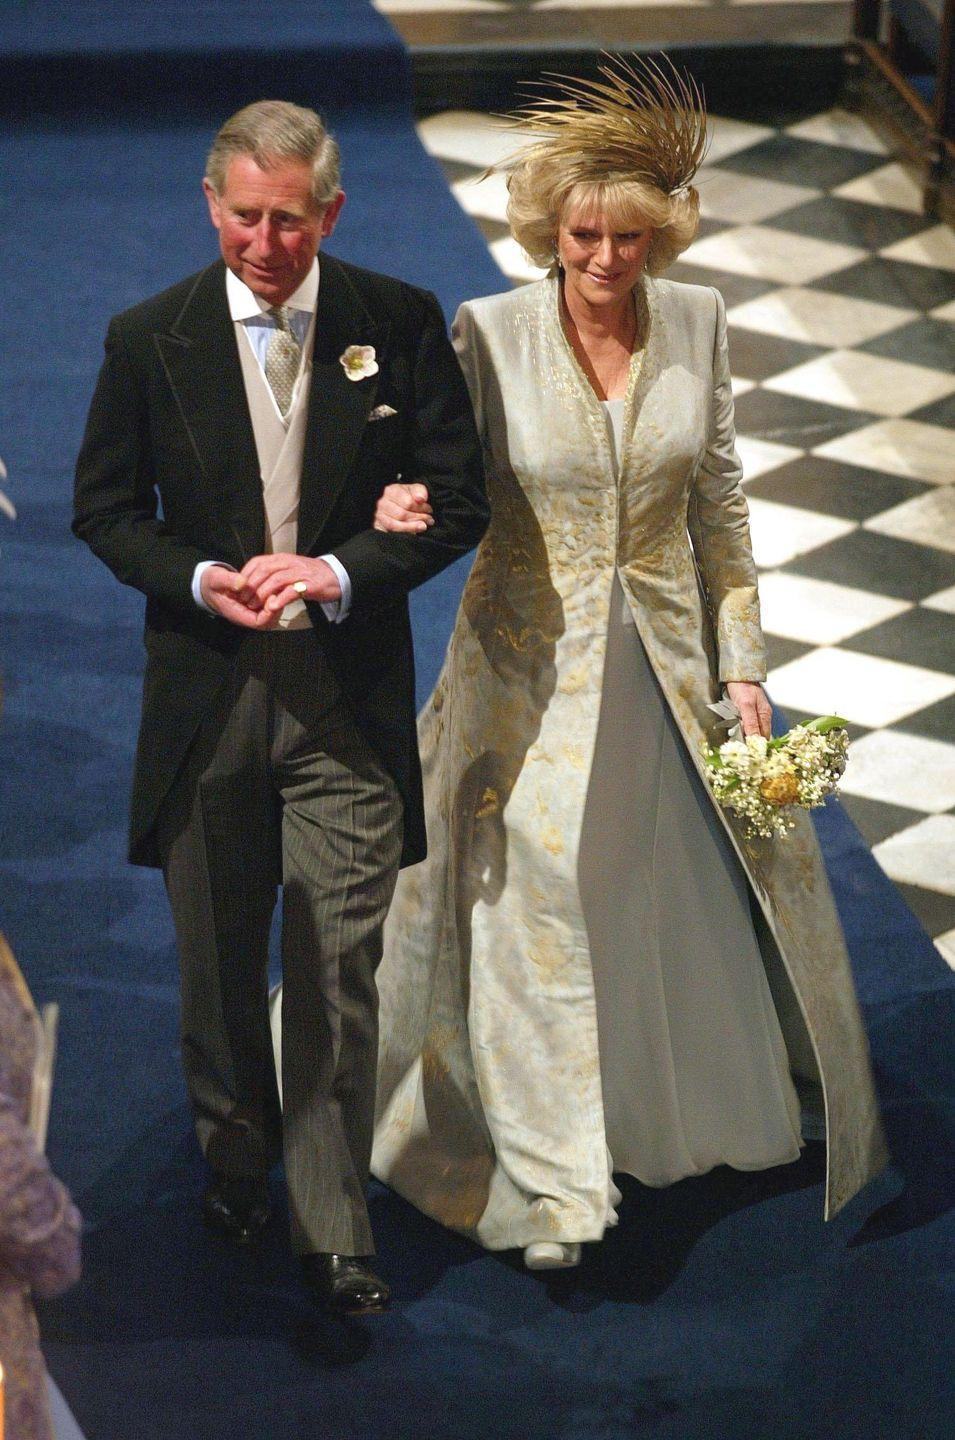 """<p>For her second marriage to Prince Charles, Camilla chose a look from <a href=""""https://www.popsugar.com/fashion/photo-gallery/44447684/image/44447696/Camilla-Parker-Bowles-2005"""" rel=""""nofollow noopener"""" target=""""_blank"""" data-ylk=""""slk:Robinson Valentine"""" class=""""link rapid-noclick-resp"""">Robinson Valentine</a> (now known as Anna Valentine) that included a white gown with a gold embroidered coat. She accessorized with a standout gold headpiece. </p>"""